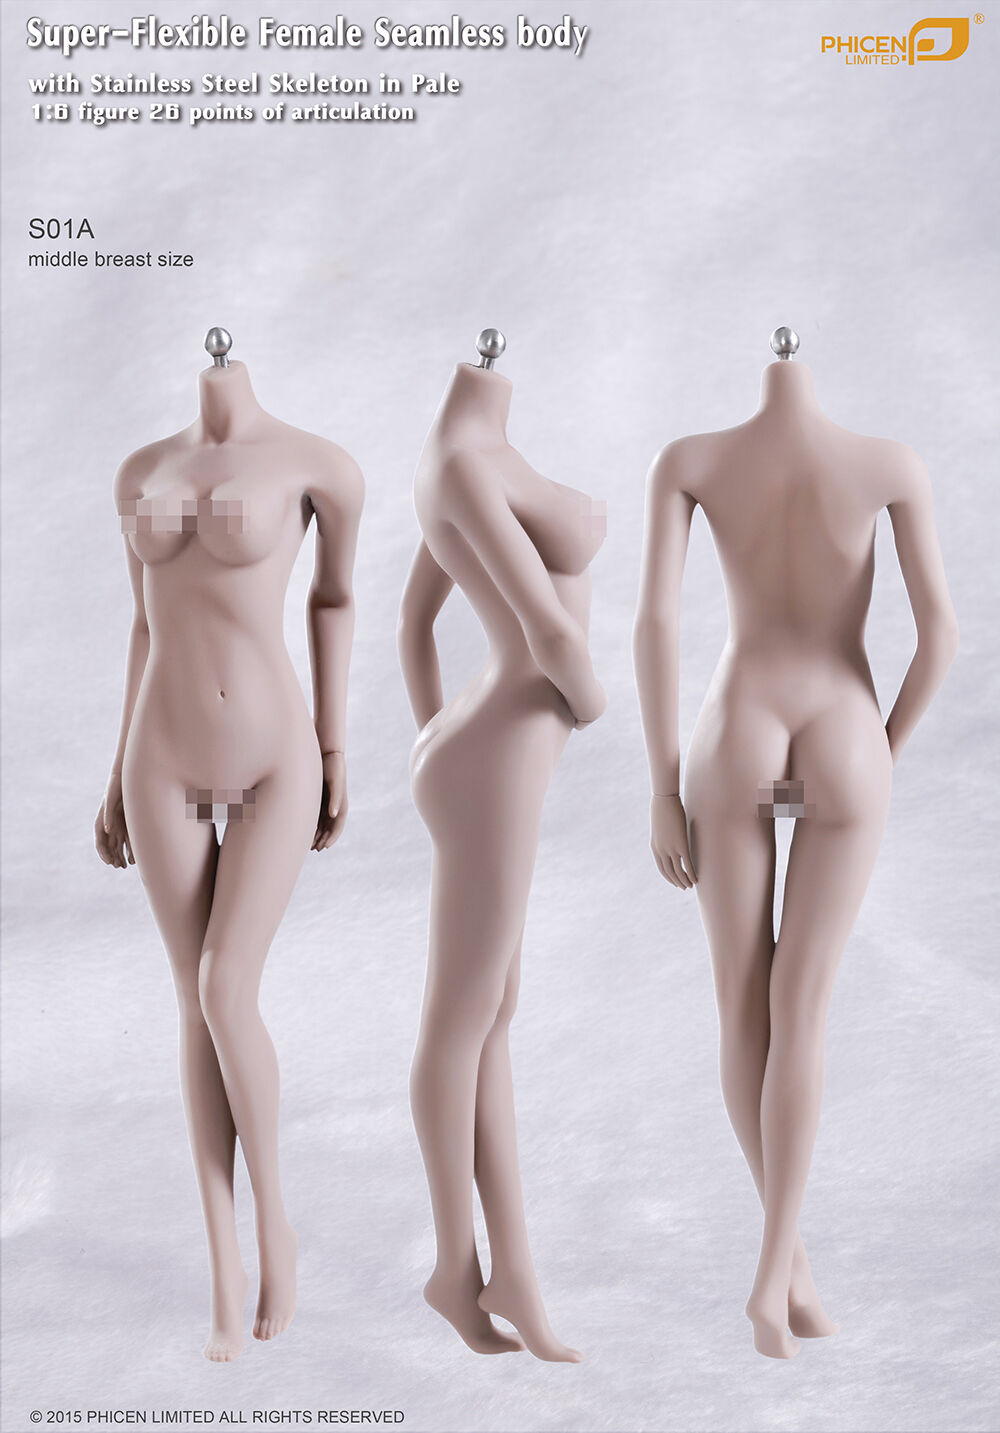 Phicen Female Seamless Body S01A Middle Breast stainless stainless stainless steel Skelenton in PALE 5f4332